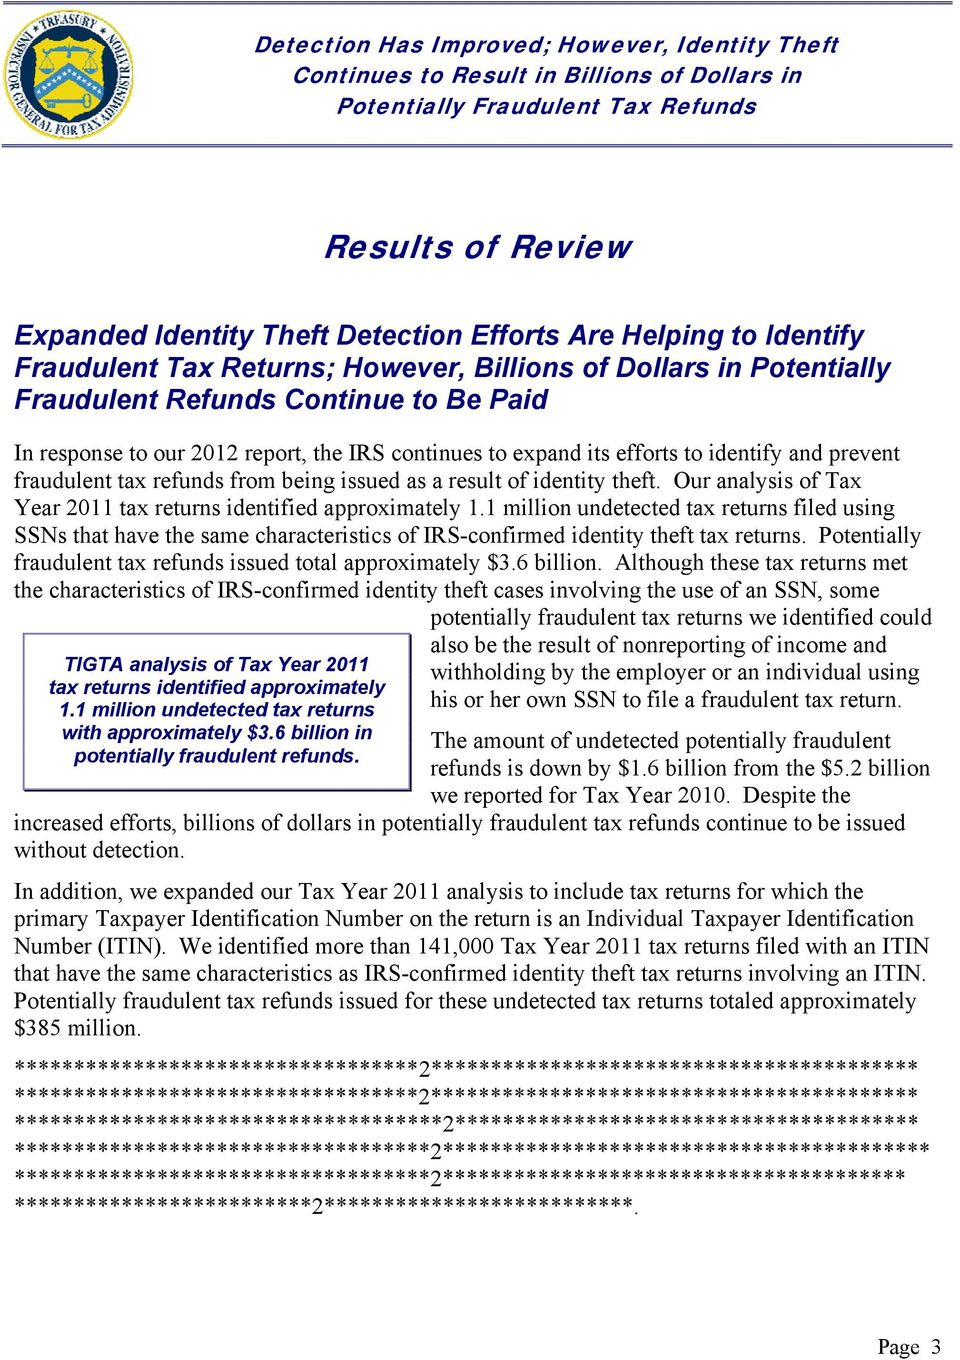 Our analysis of Tax Year 2011 tax returns identified approximately 1.1 million undetected tax returns filed using SSNs that have the same characteristics of IRS-confirmed identity theft tax returns.